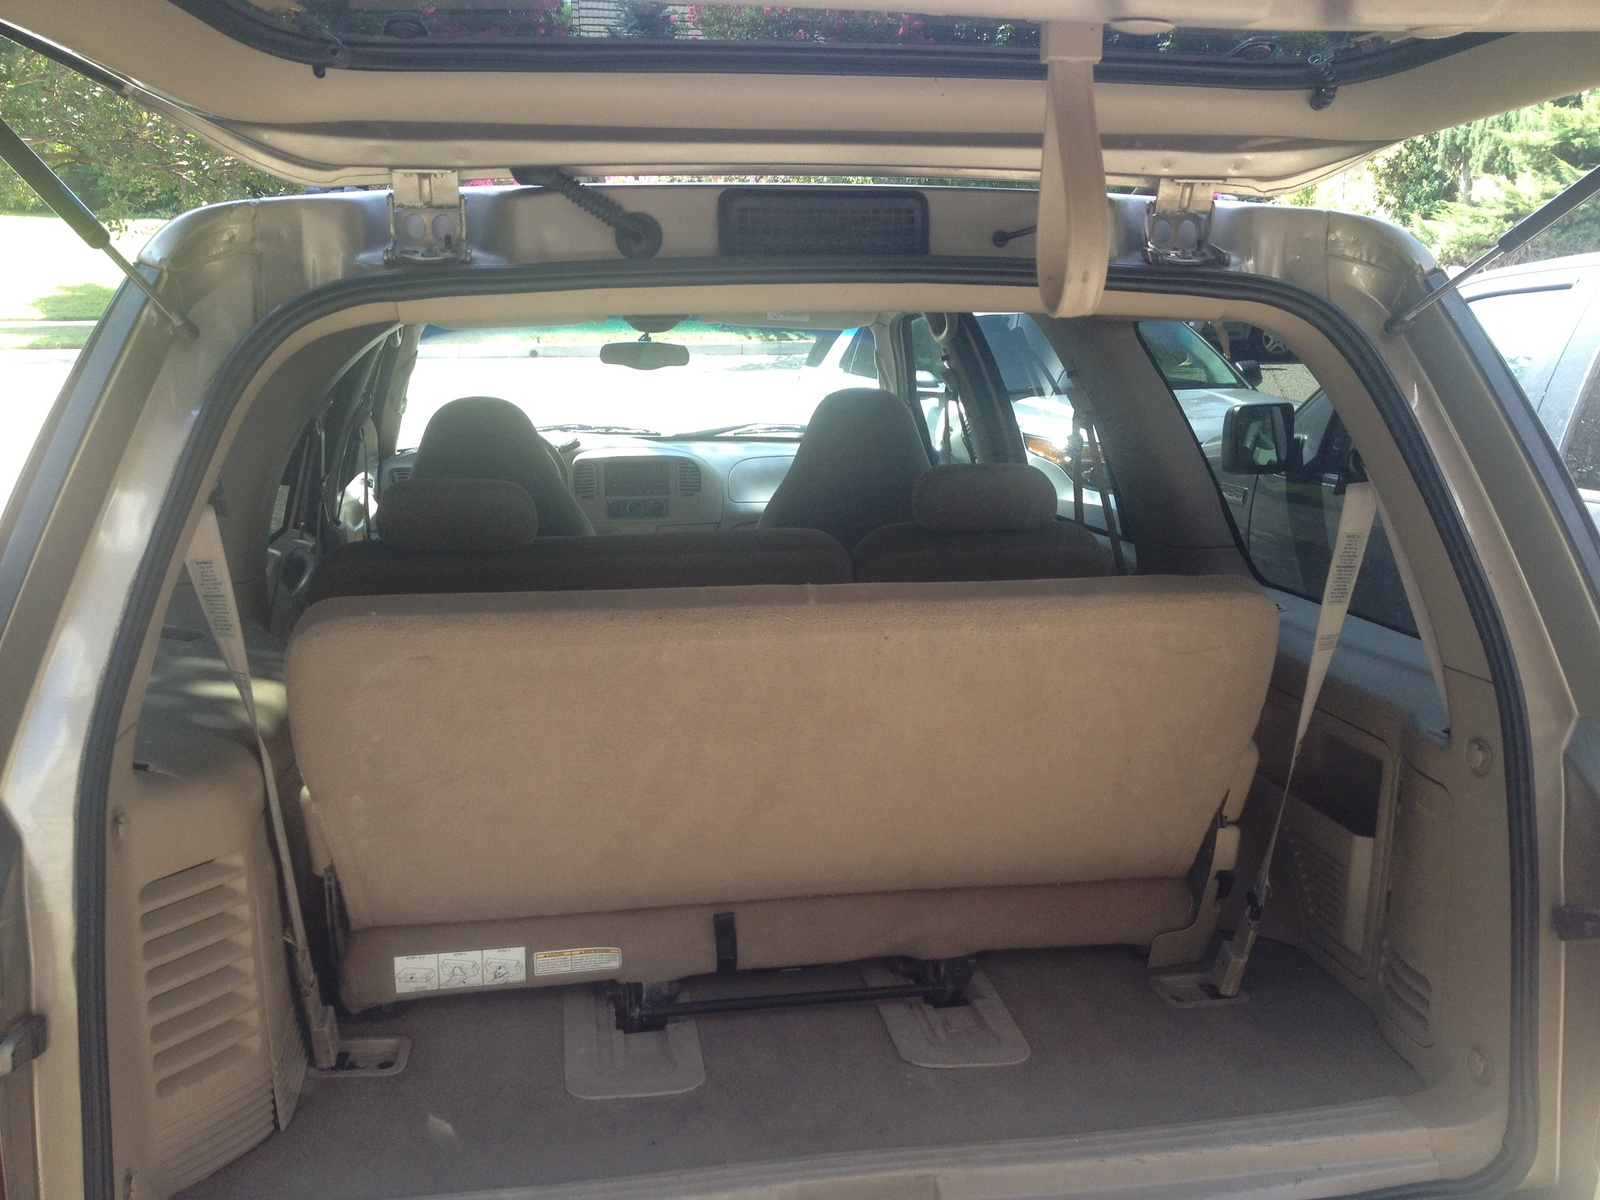 2001 Ford Expedition Eddie Bauer >> 2001 Ford Expedition - Interior Pictures - CarGurus